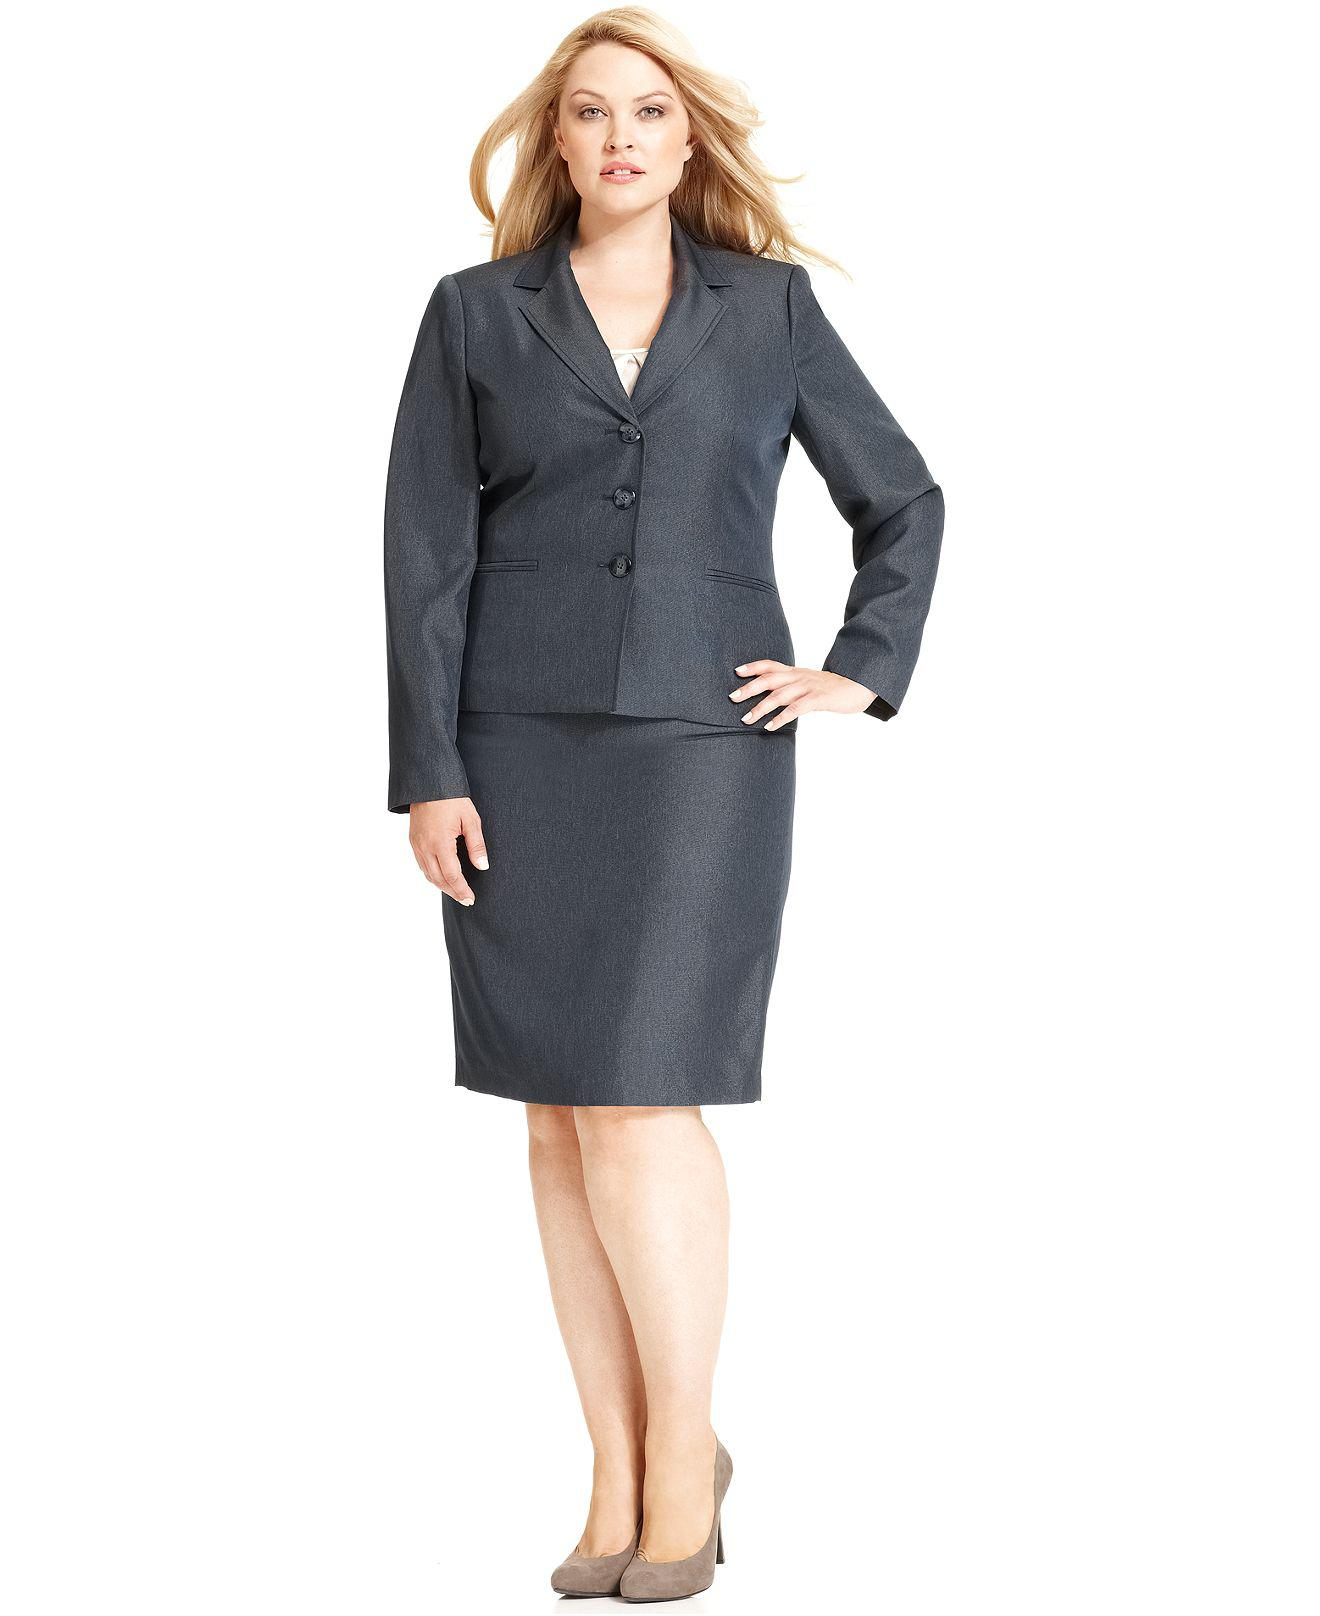 White Plus Size Skirt Suit - Skirts